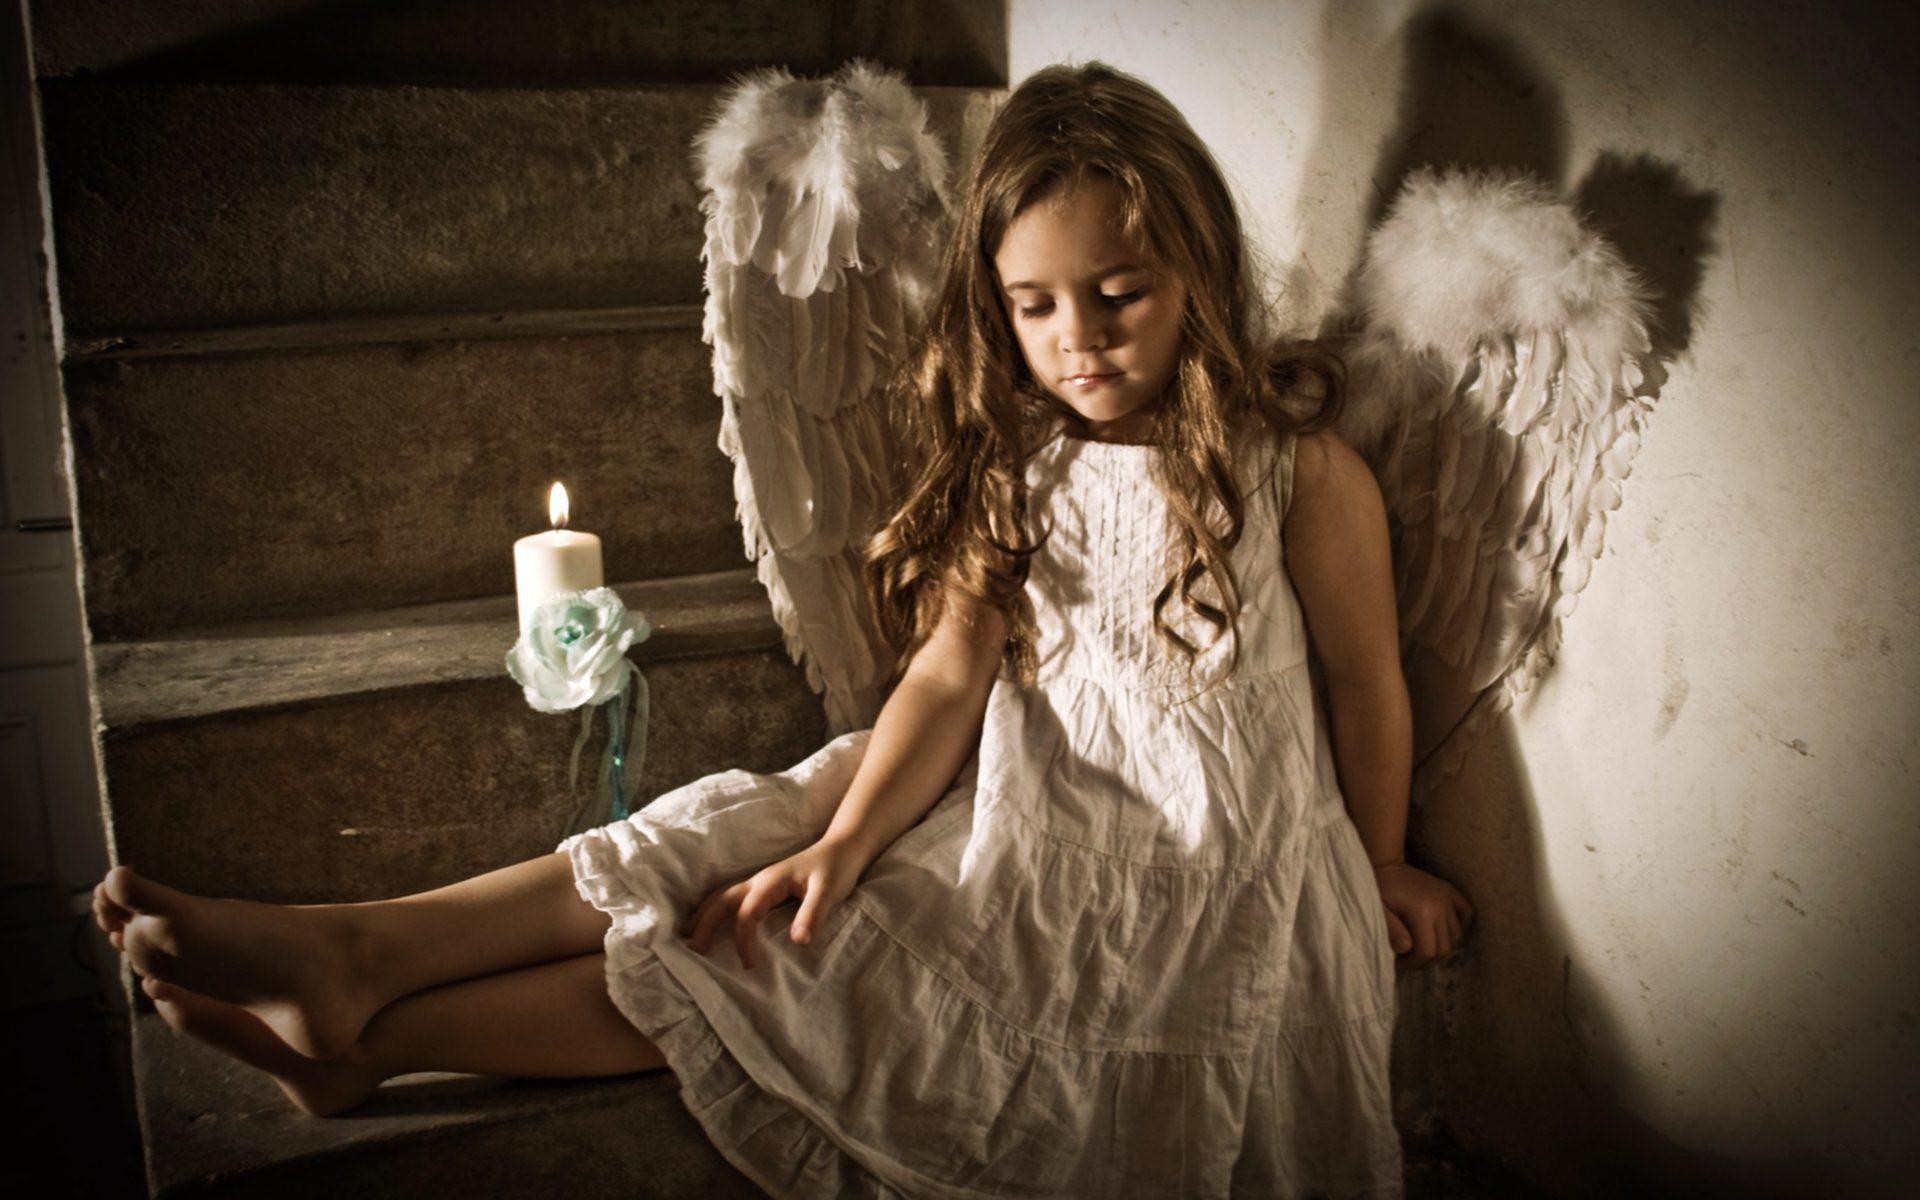 http://obviousmag.org/um_doce_de_pimenta/2015/06/13/Child-Girl-Wings-Candle.jpg